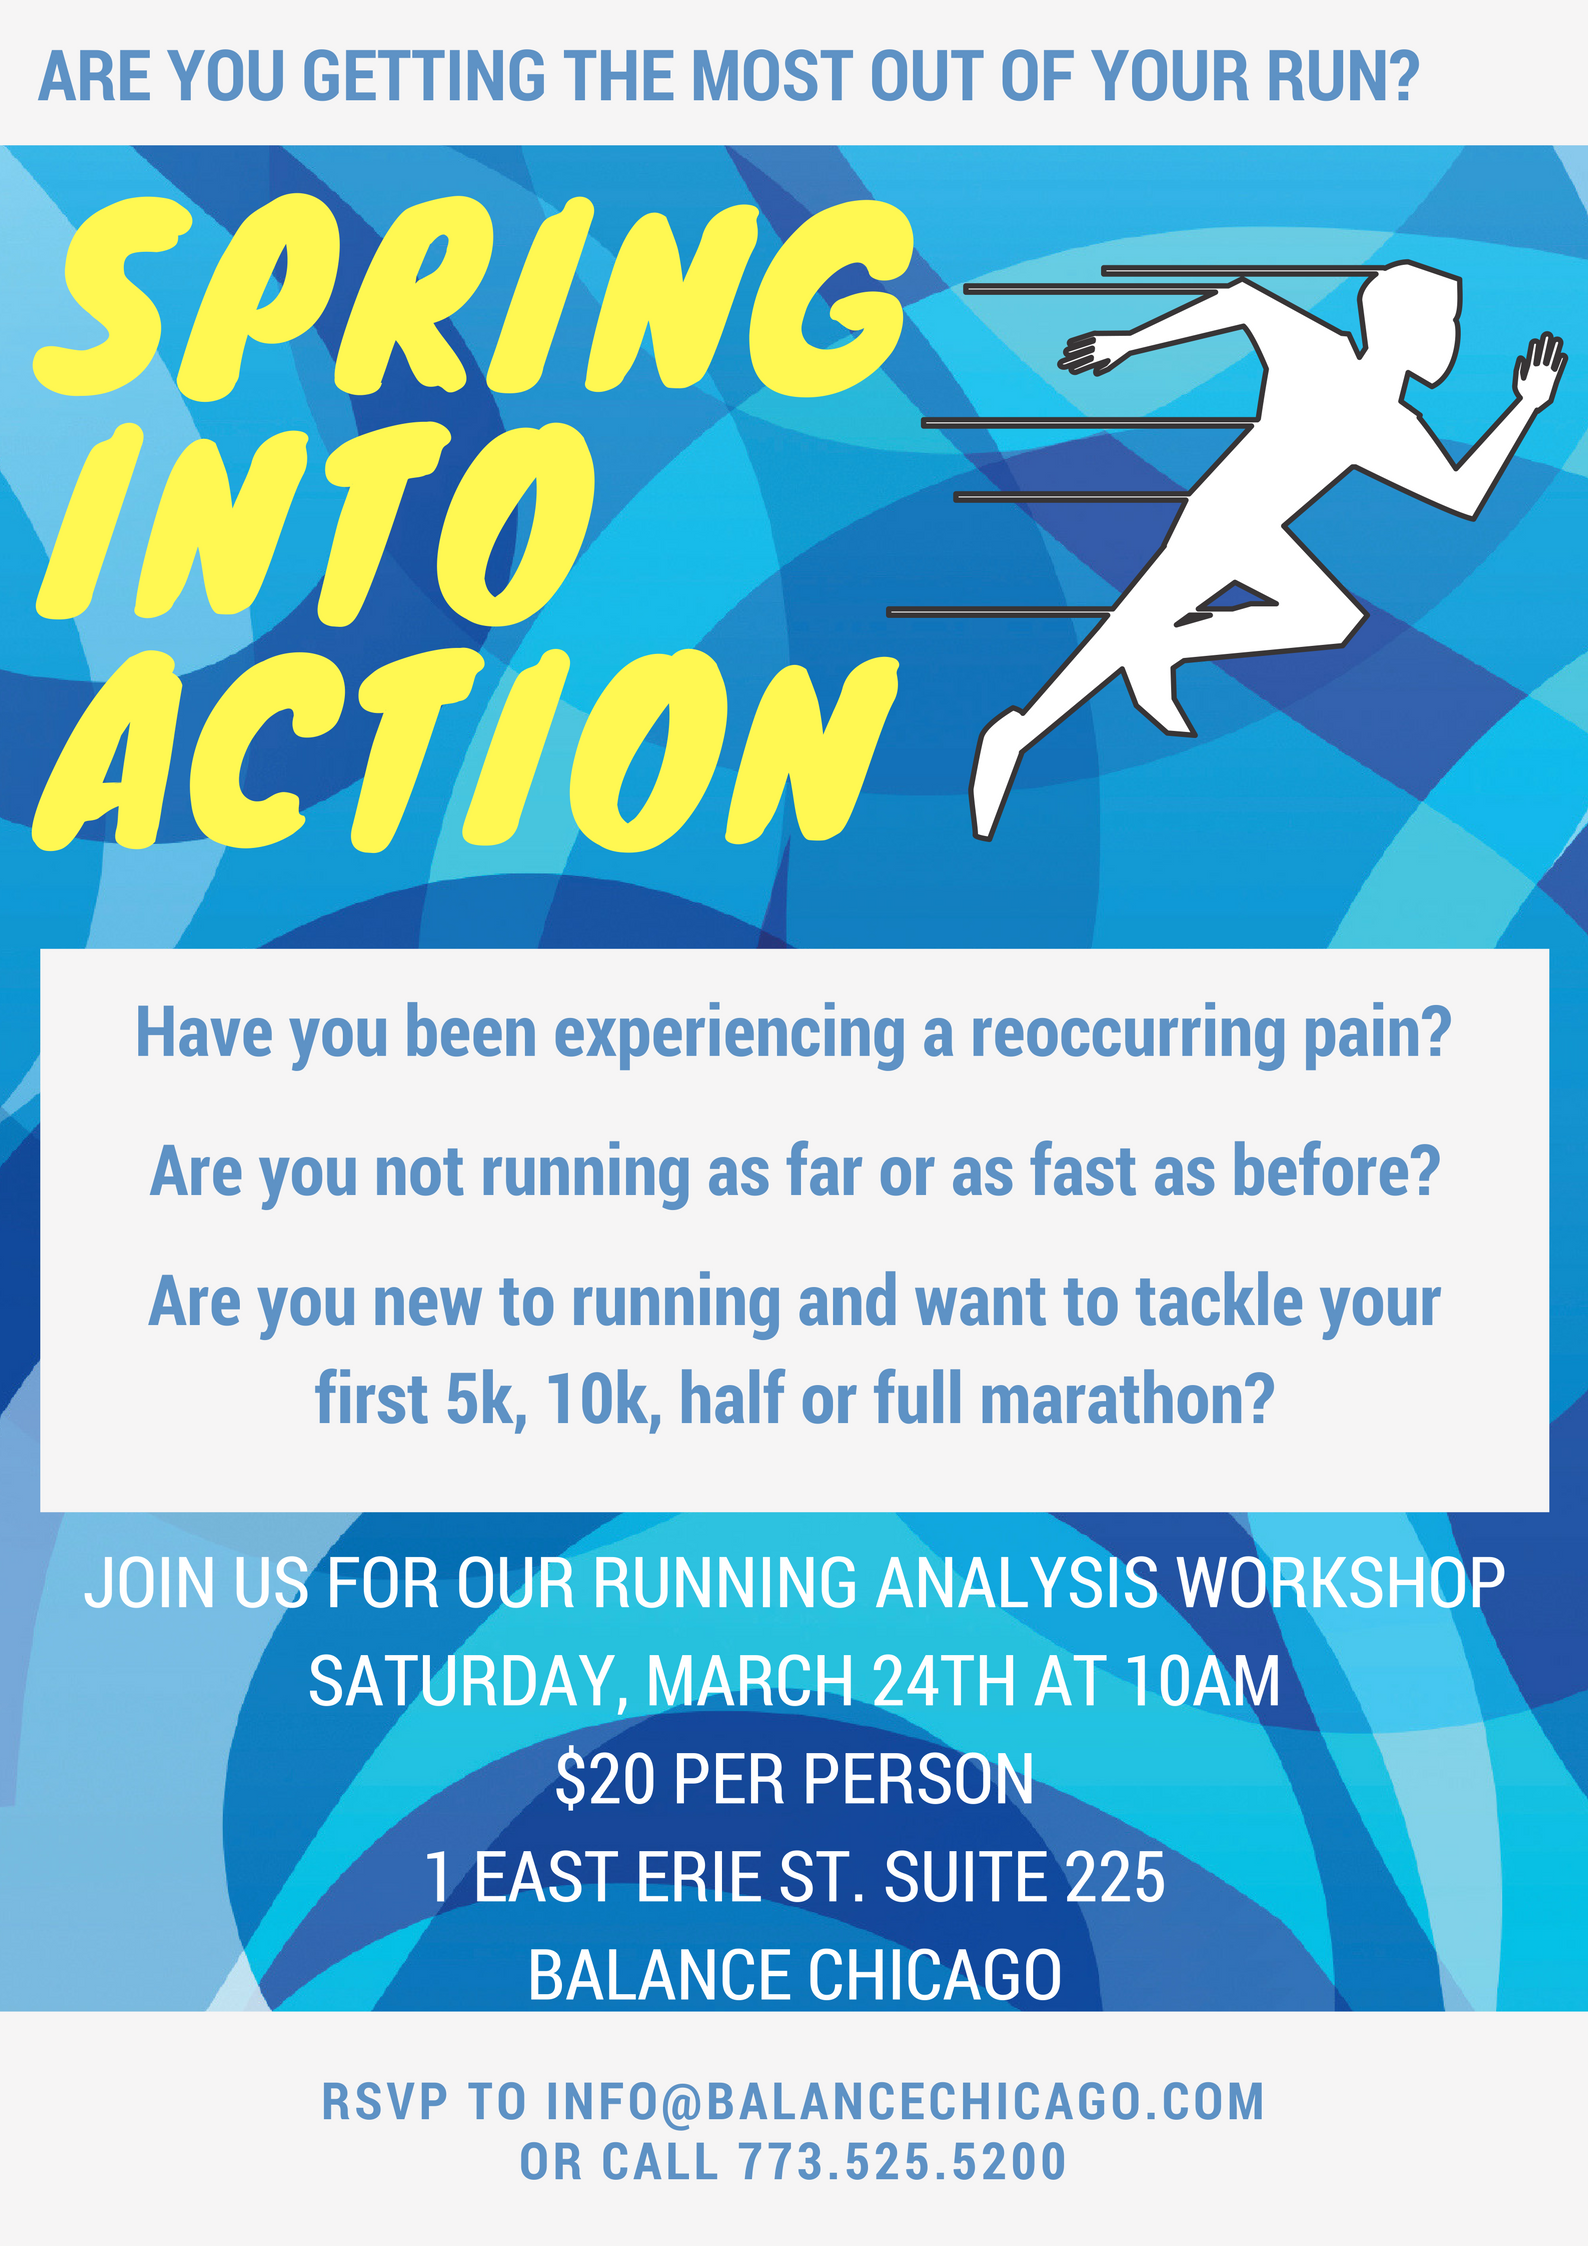 Balance Chicago Running Analysis Workshop